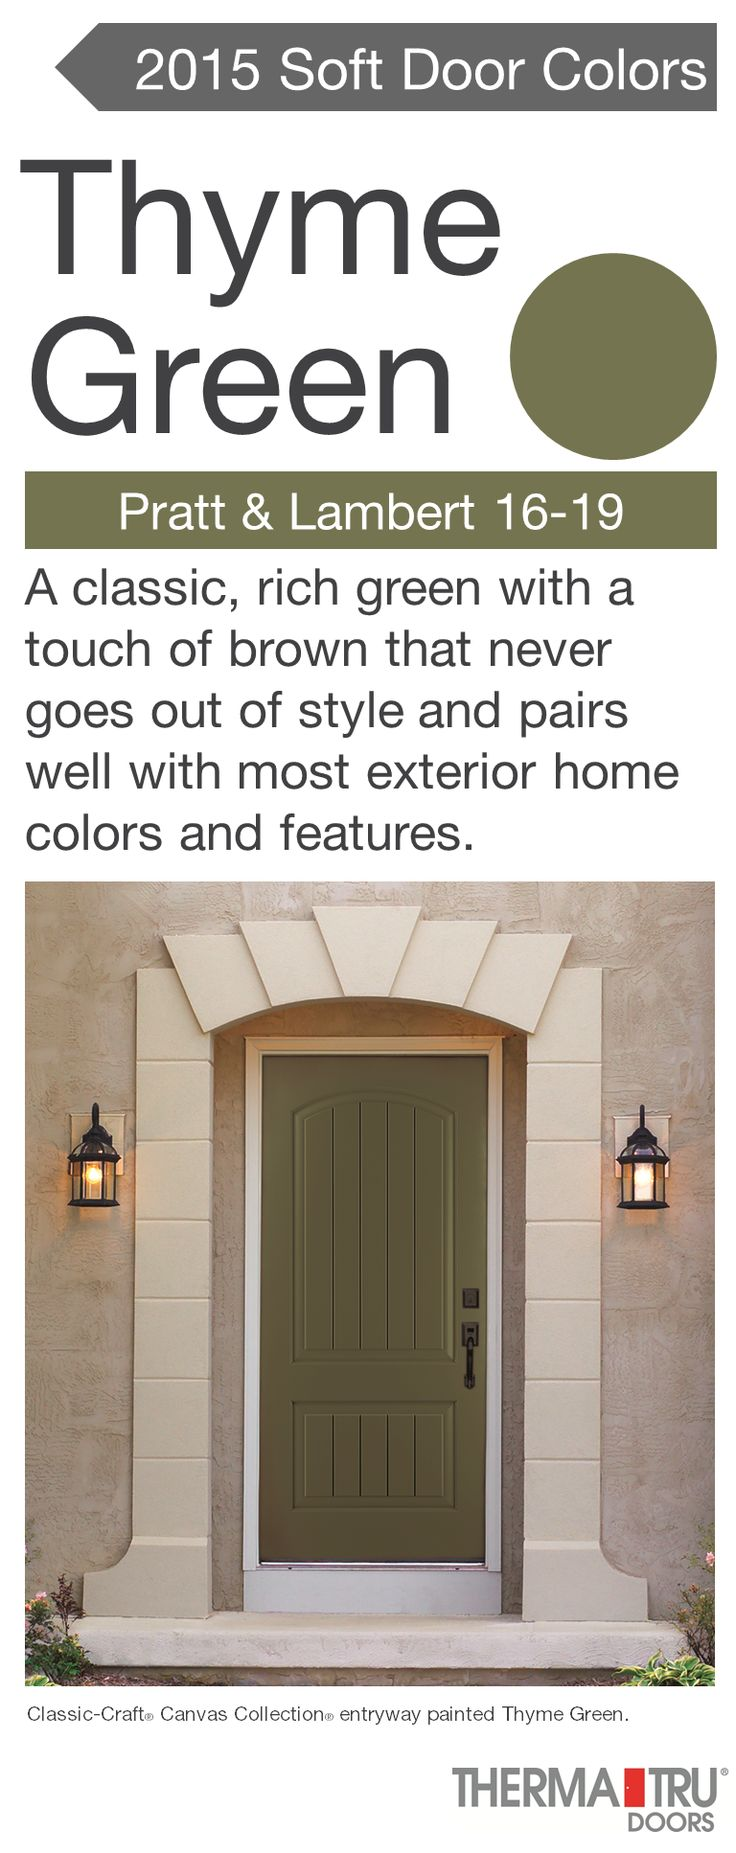 Painted front doors with sidelights - Classic Craft Canvas Collection Fiberglass Door Painted Thyme Green One Of The Hot Door